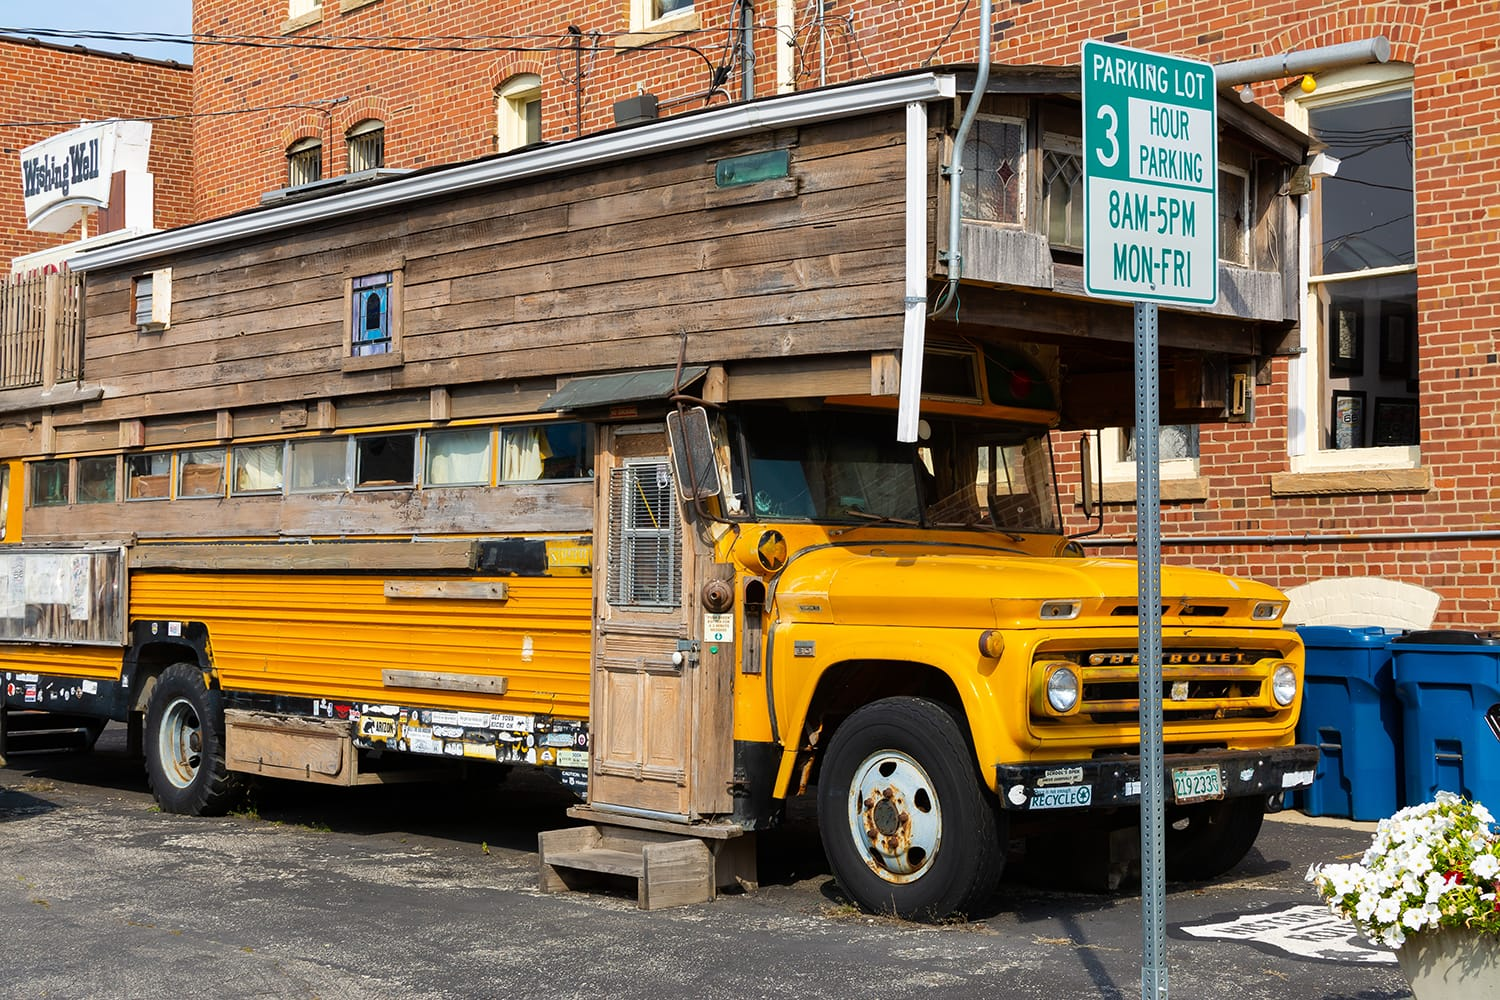 Bob Waldmire's School Bus parked at the Route 66 museum in Pontiac, Illinois, USA